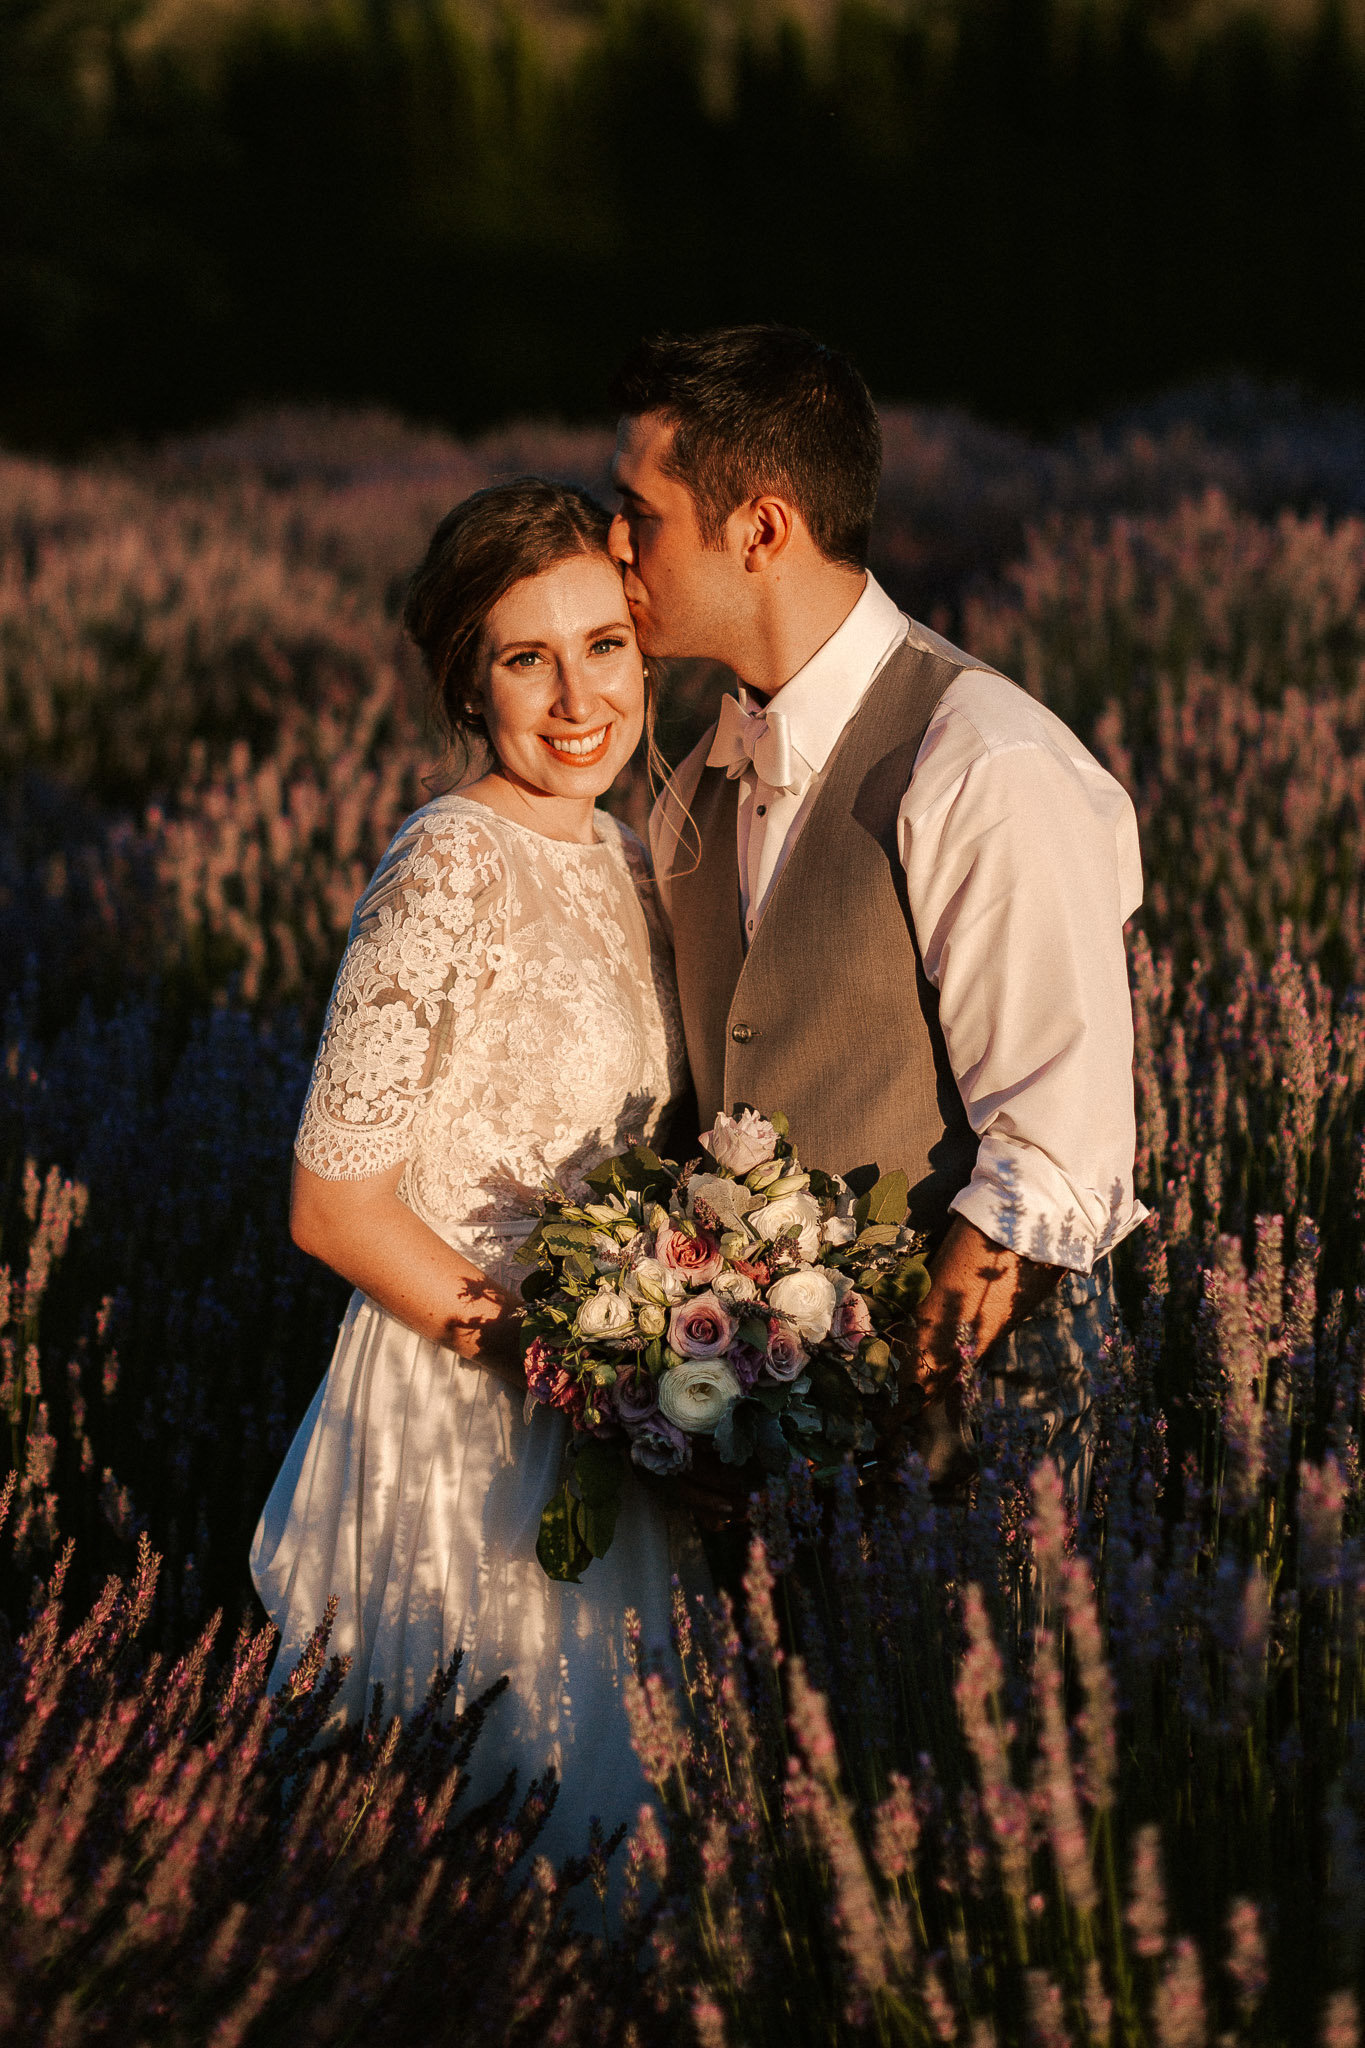 woodinville-lavender-farm-wedding-venue-photos-luma-weddings-71